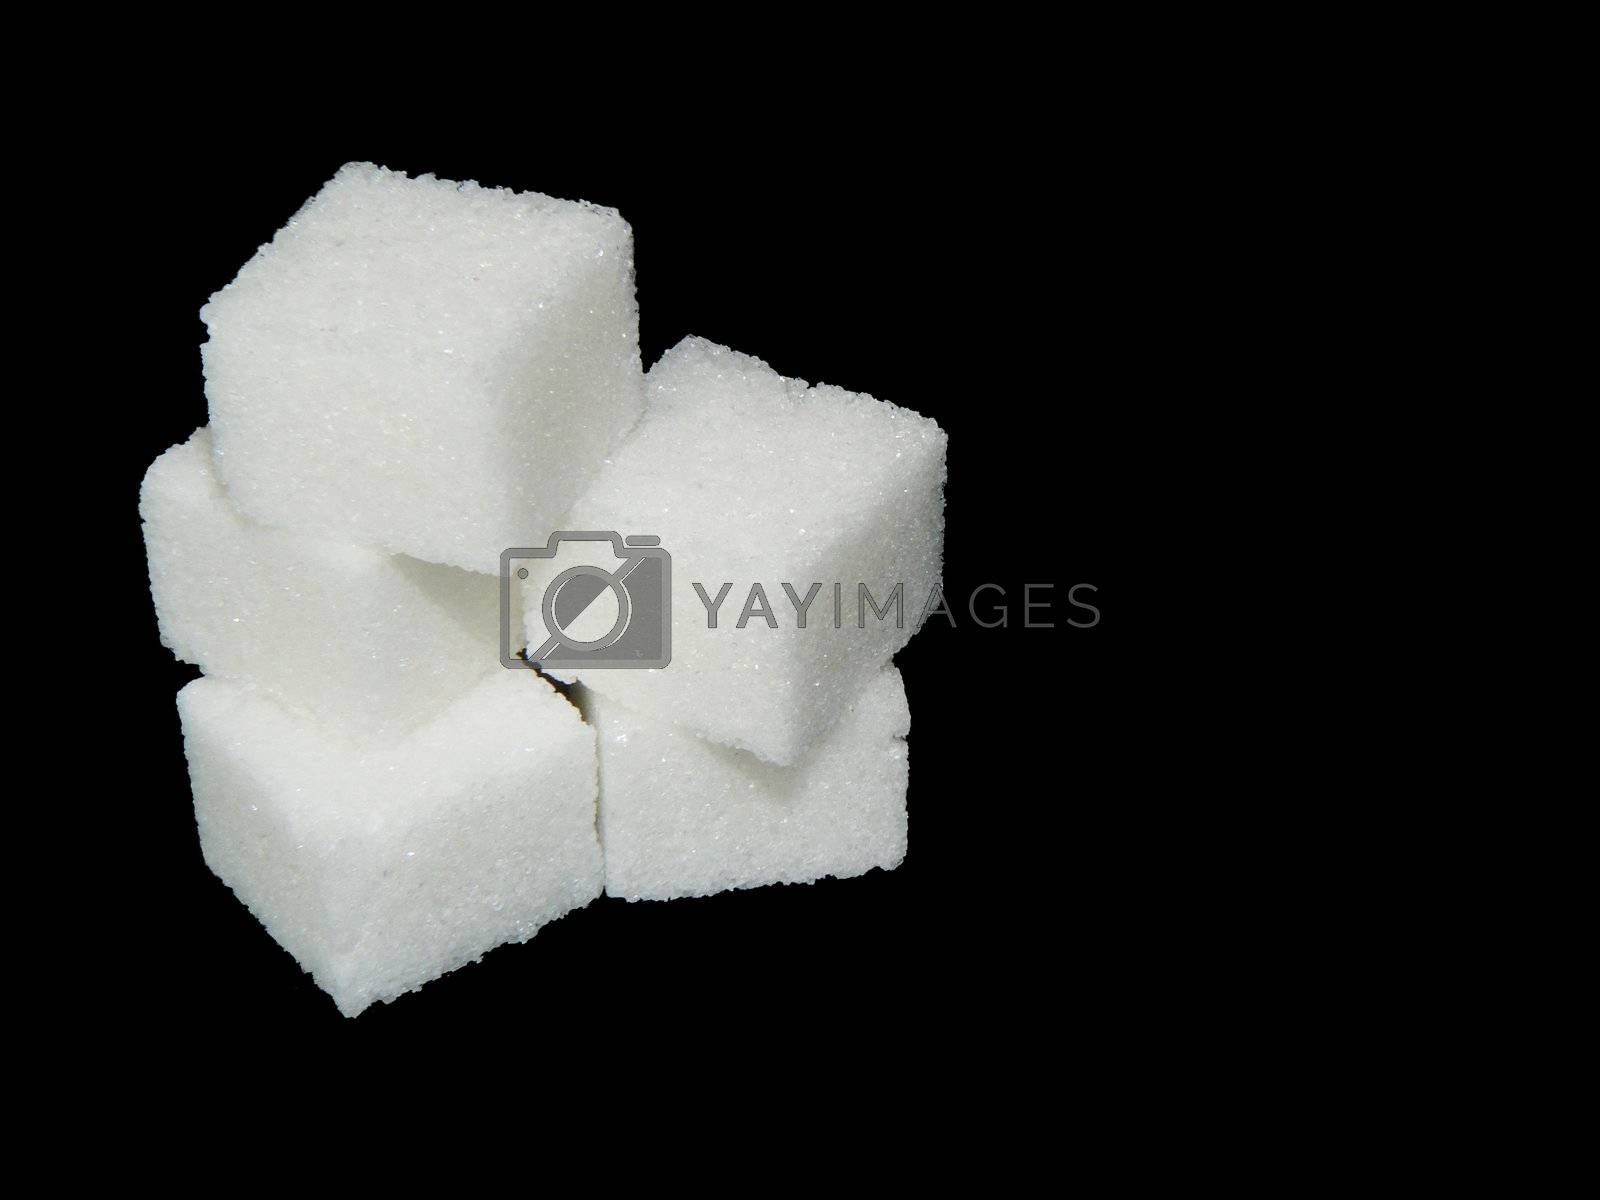 group of sugar cubes on black background